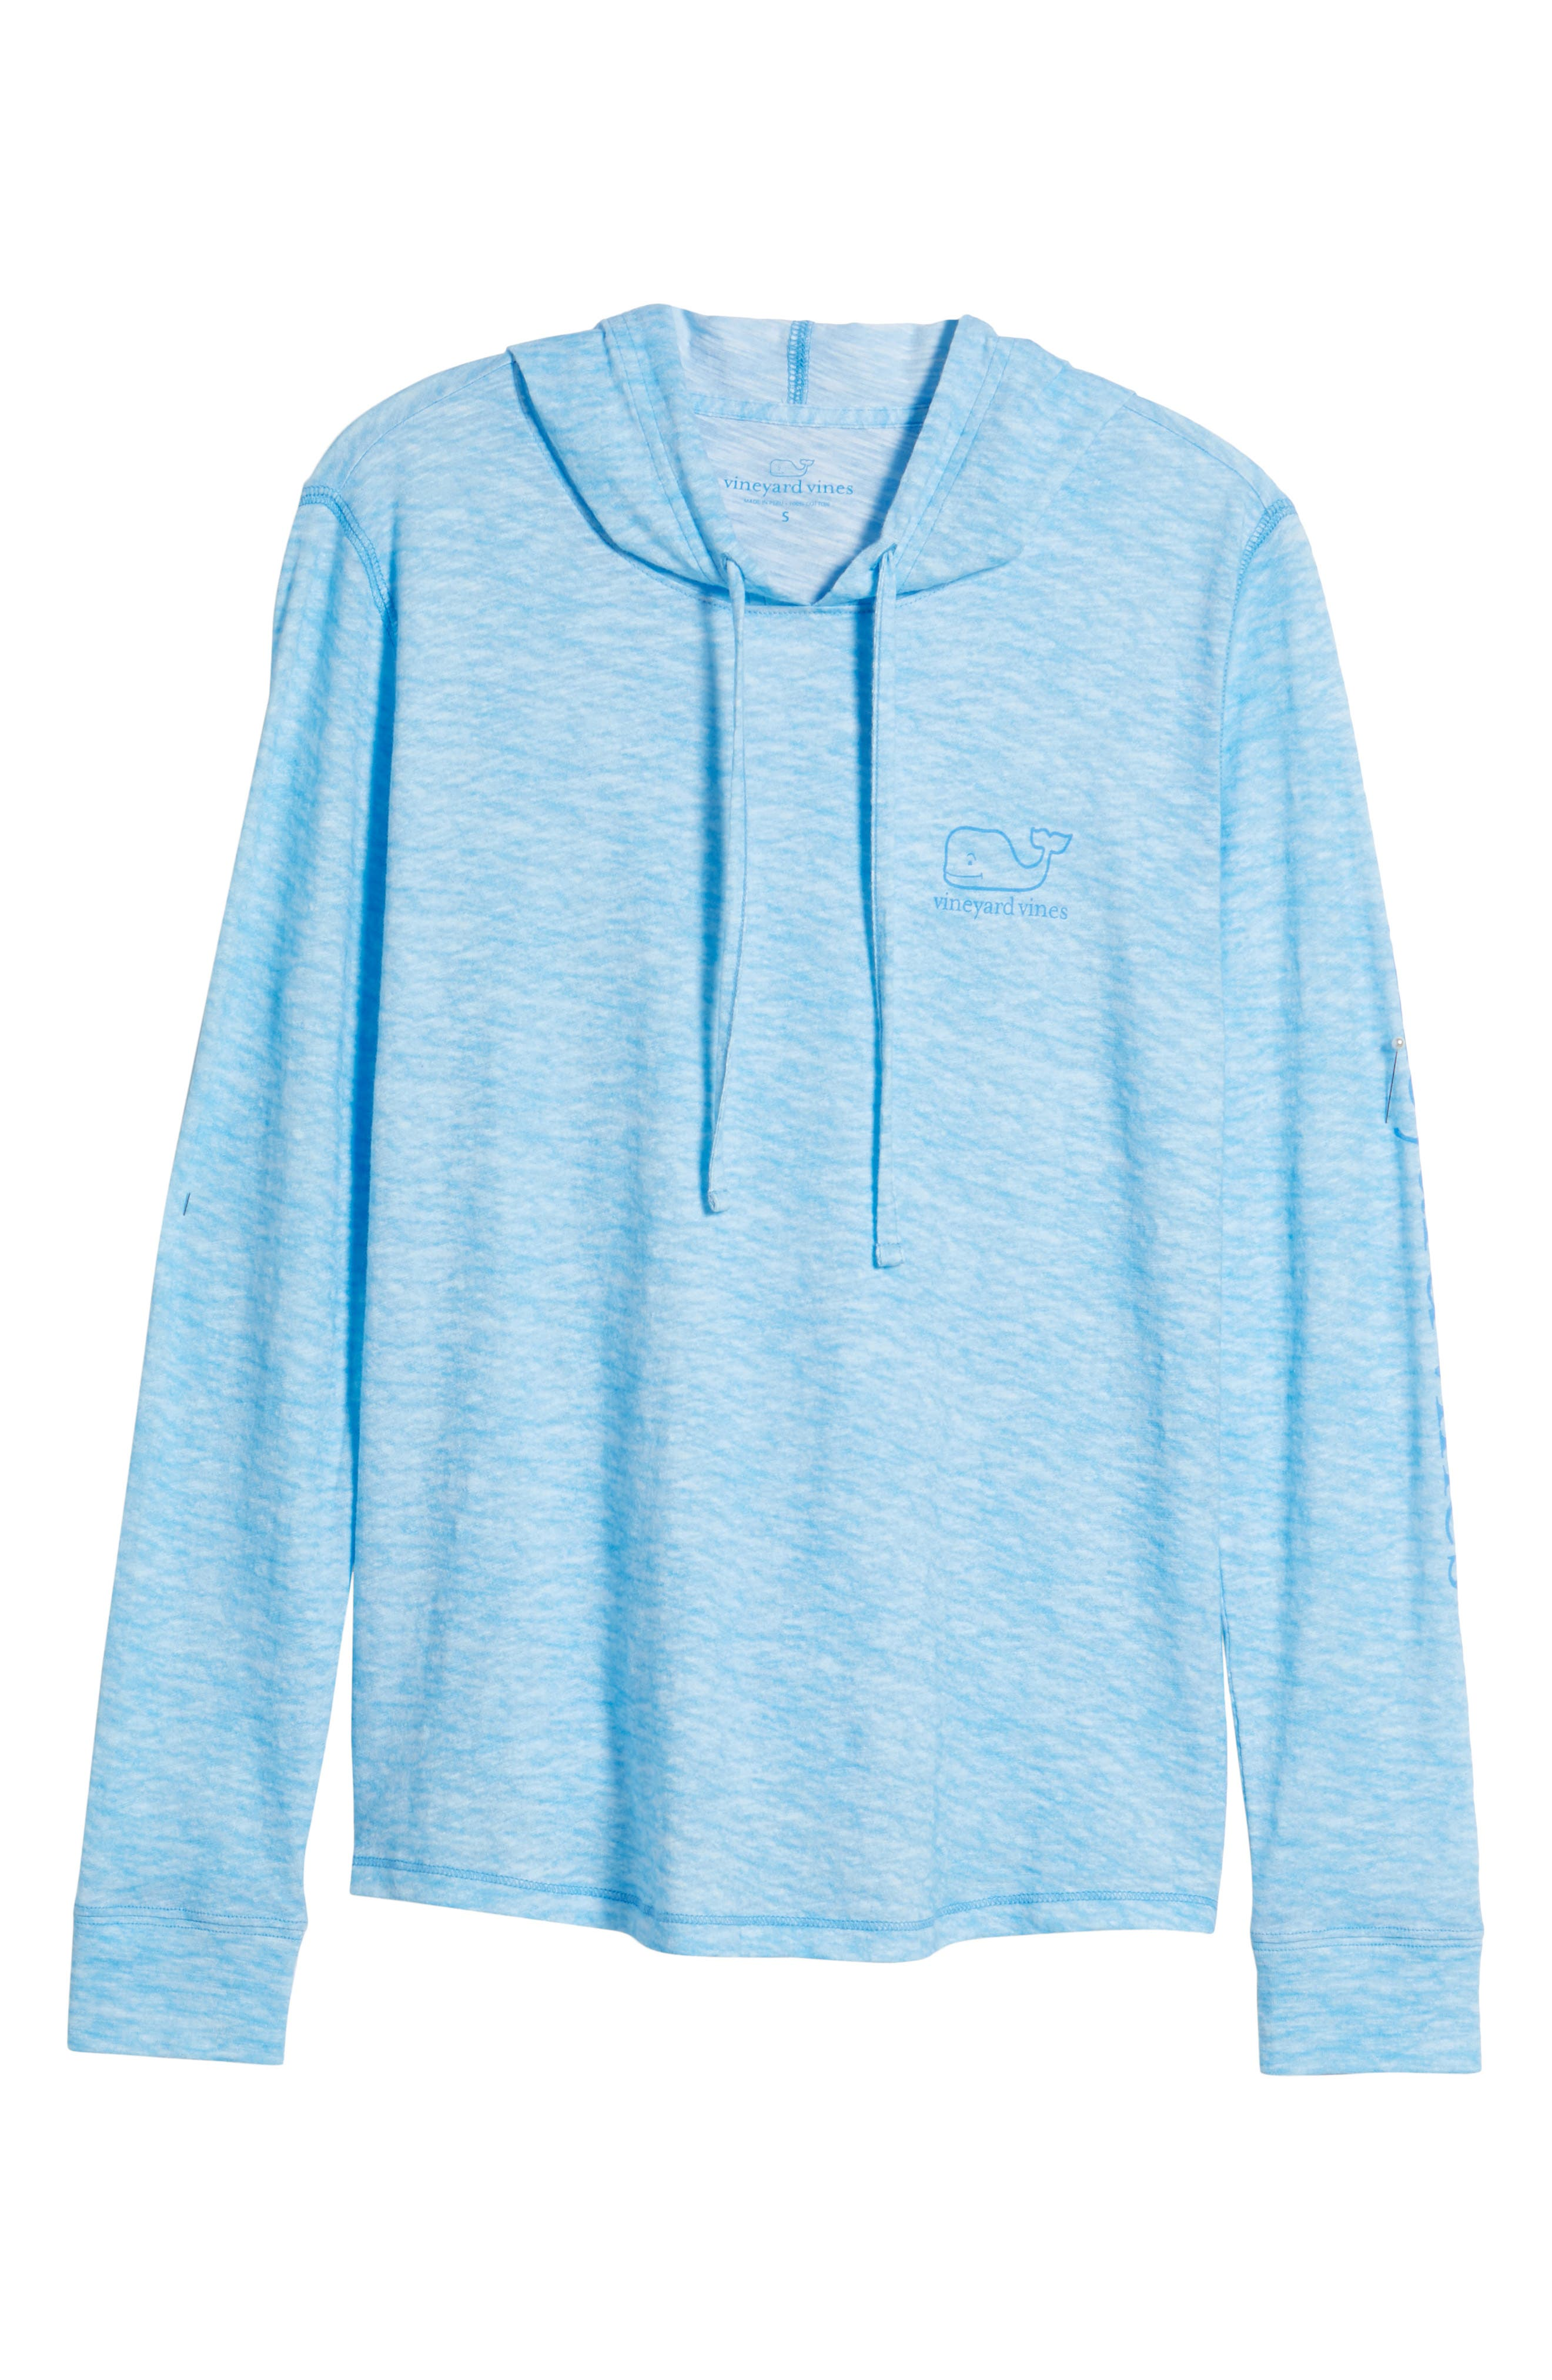 VINEYARD VINES,                             Whale Hoodie,                             Alternate thumbnail 7, color,                             474